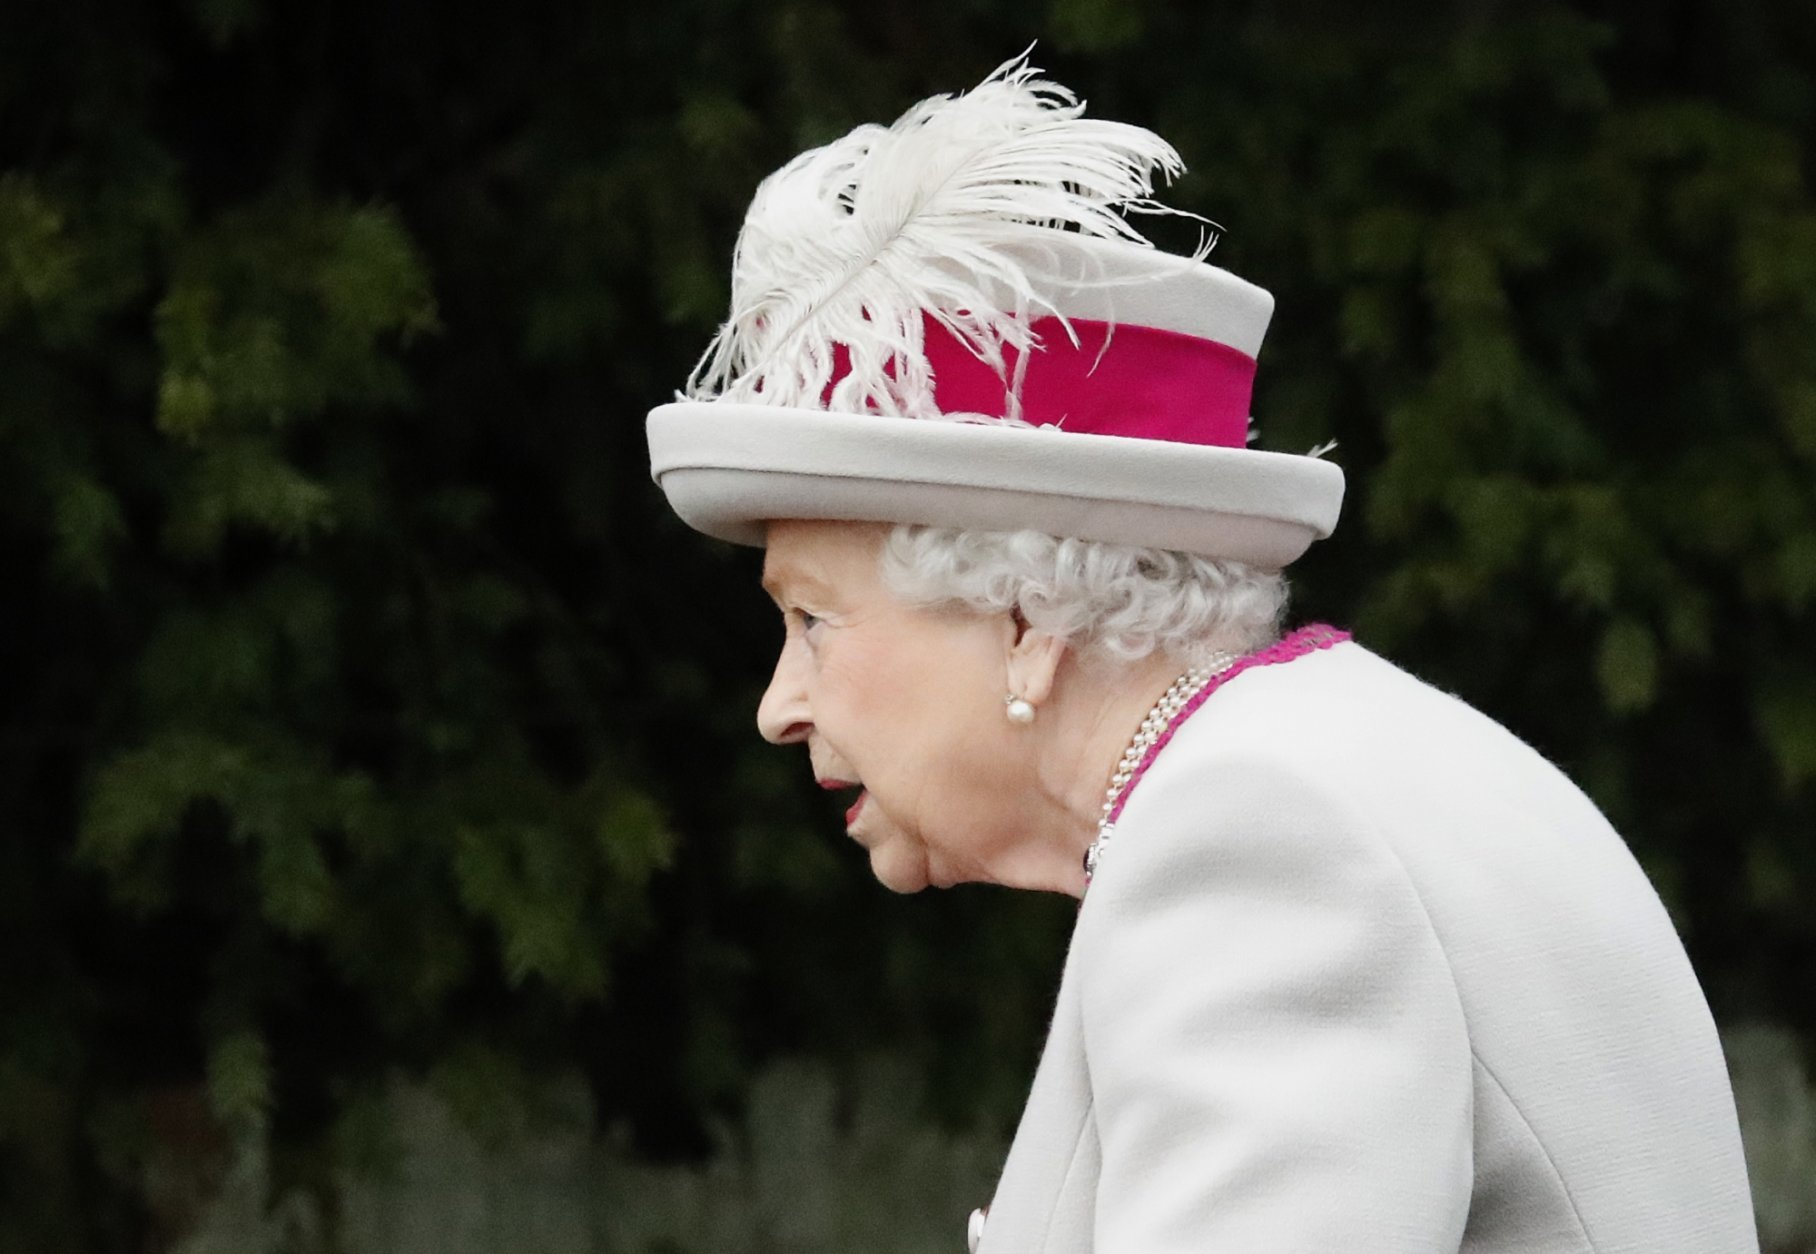 Britain's Queen Elizabeth II arrives to attend the Christmas day service at St Mary Magdalene Church in Sandringham in Norfolk, England, Tuesday, Dec. 25, 2018. (AP PhotoFrank Augstein)